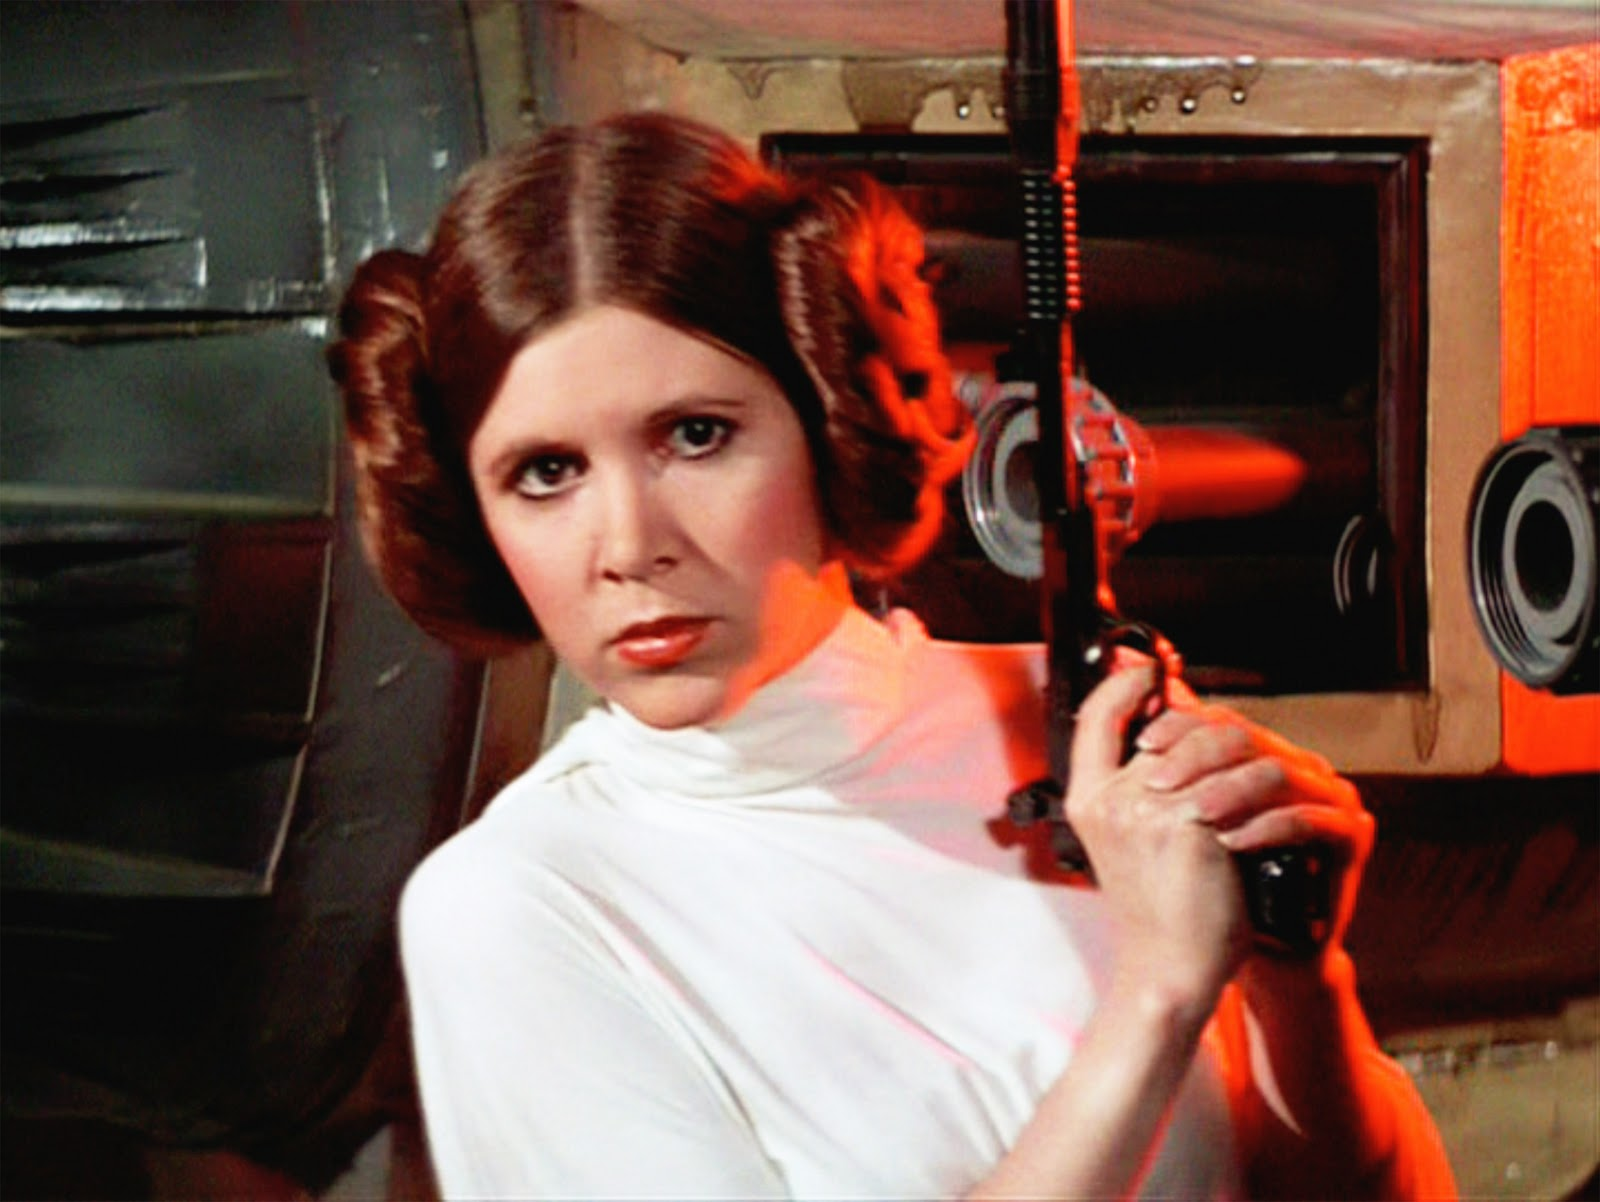 carrie fisher confirms her return as princess leia in star wars episode vii nerd reactor. Black Bedroom Furniture Sets. Home Design Ideas